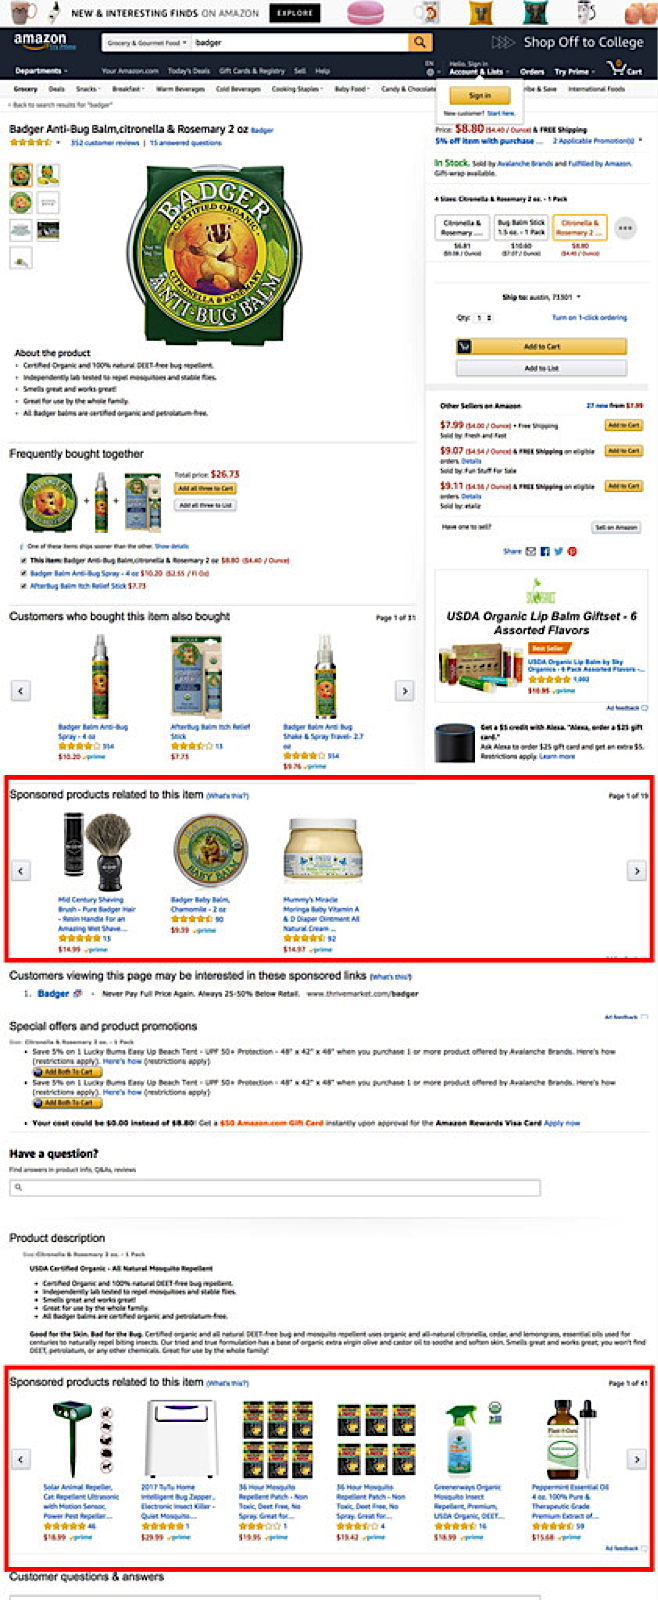 Amazon Sponsored Product Ads